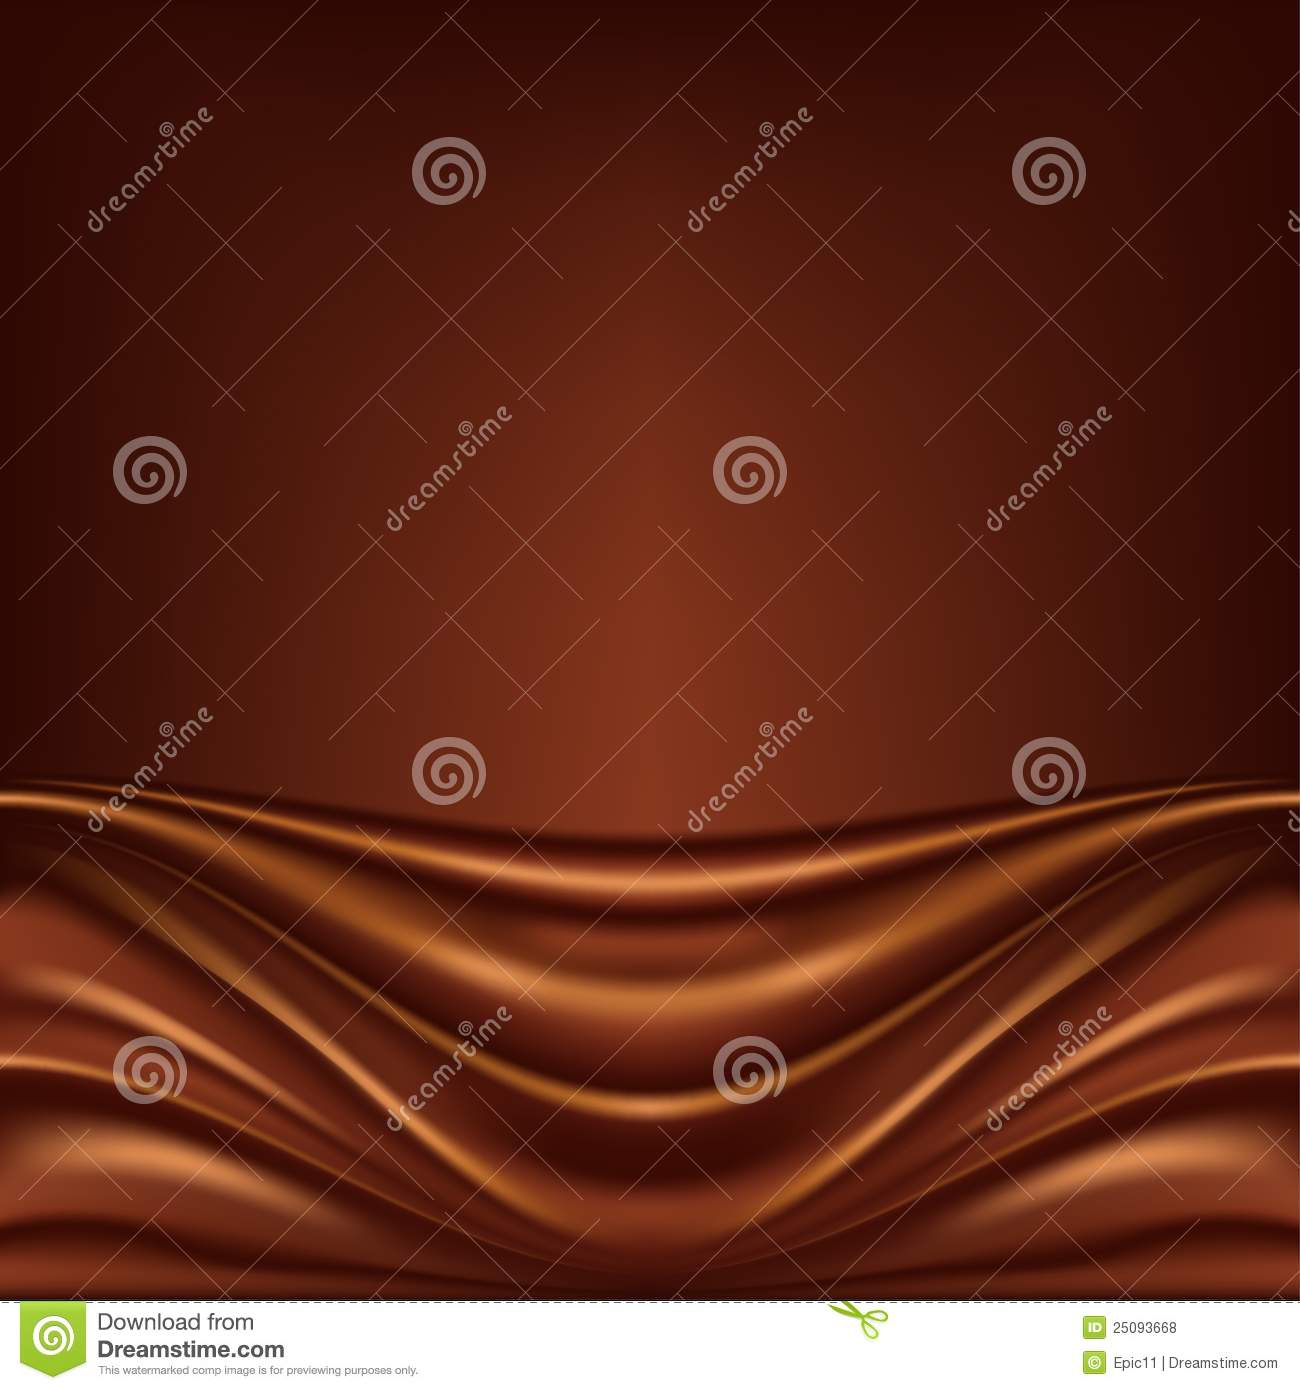 abstract chocolate background stock vector image 25093668